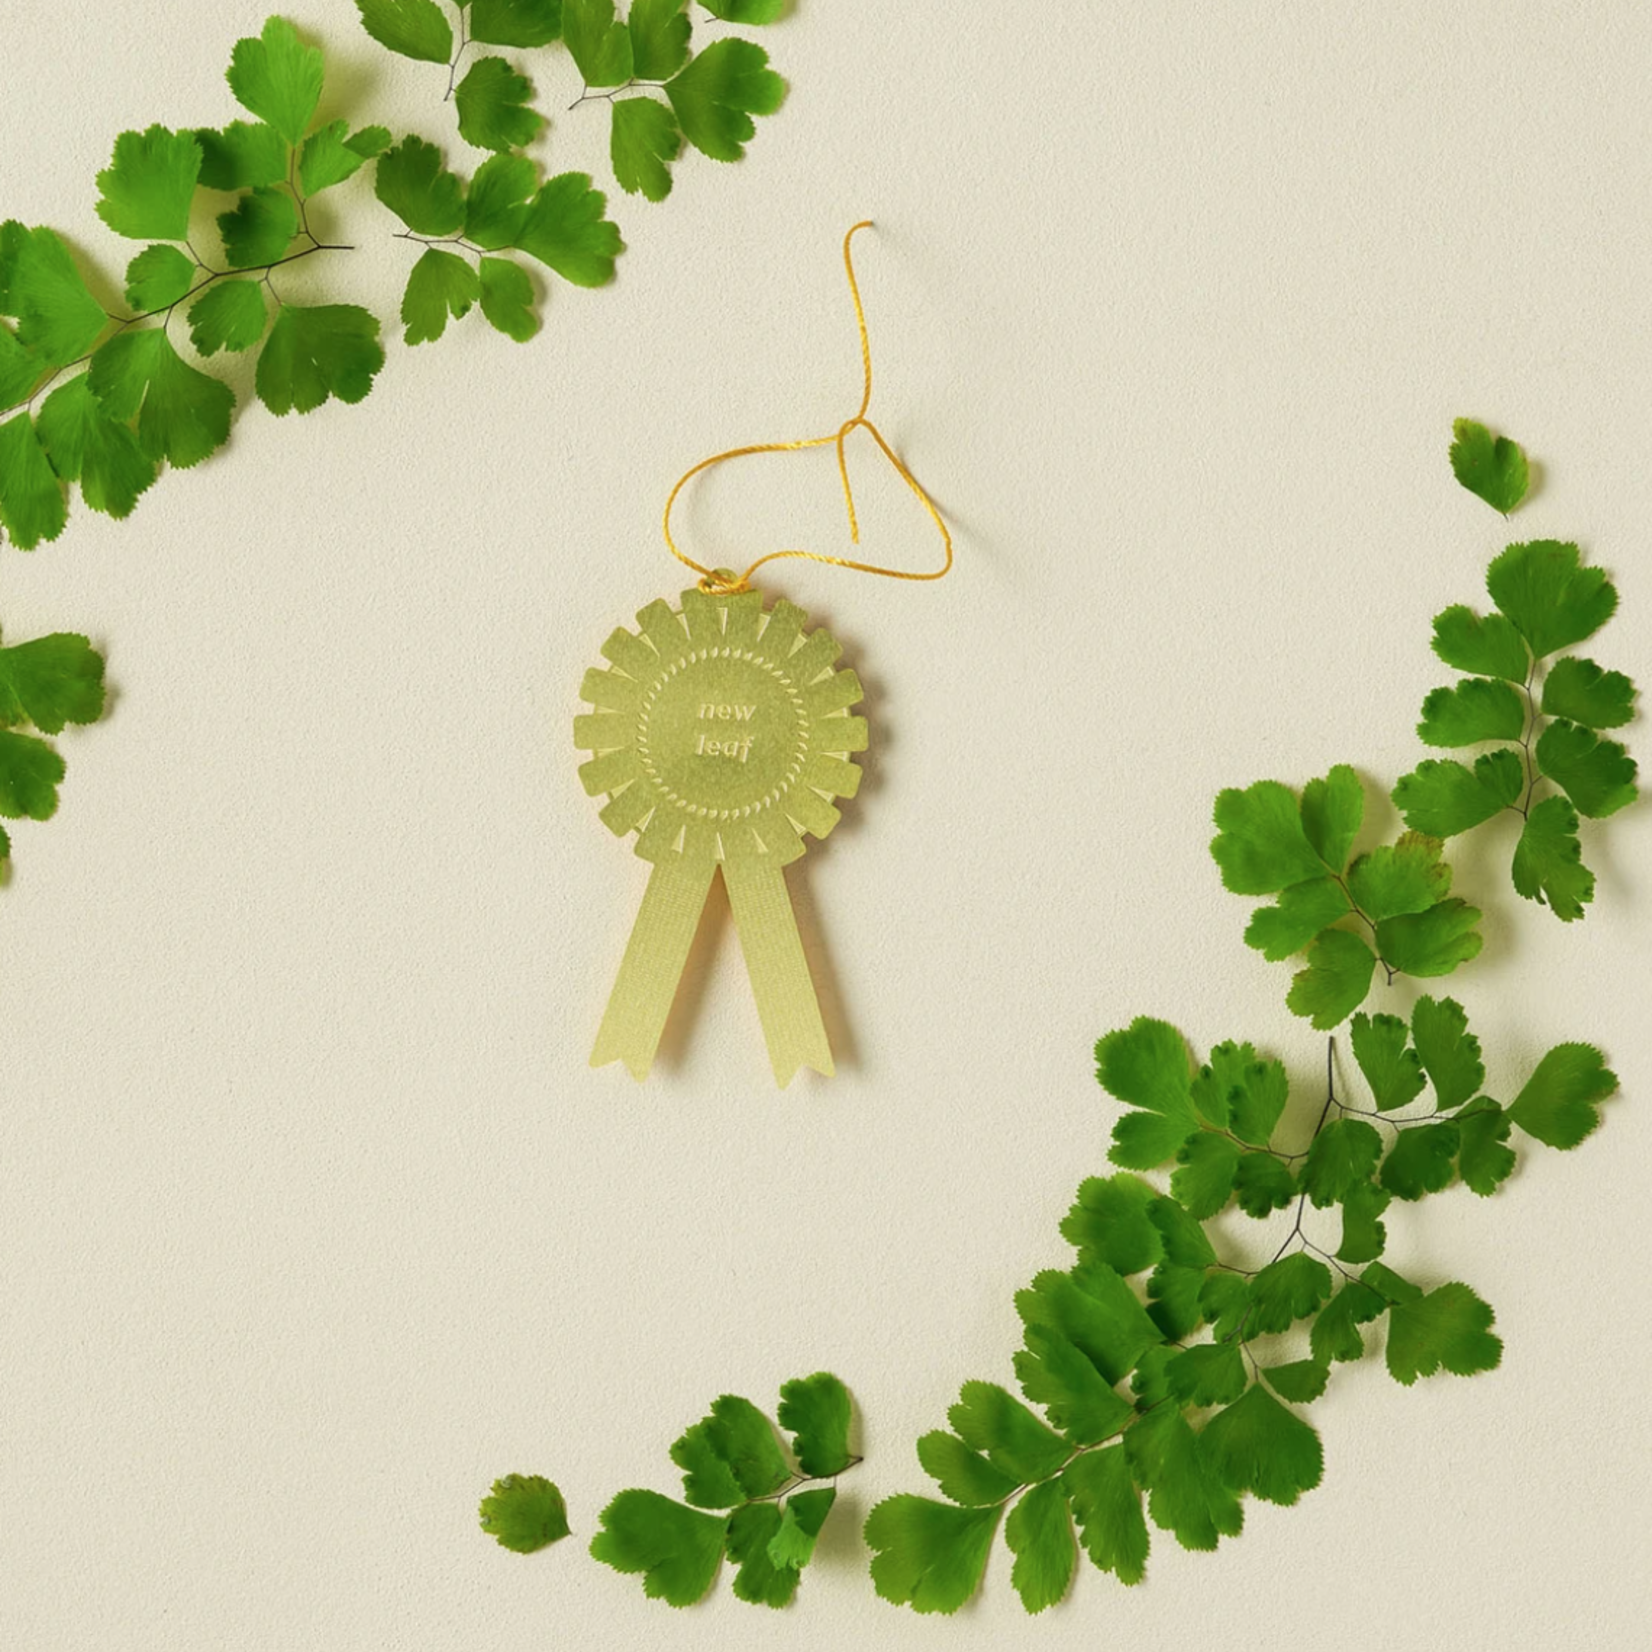 another studio Plant Award - New Leaf